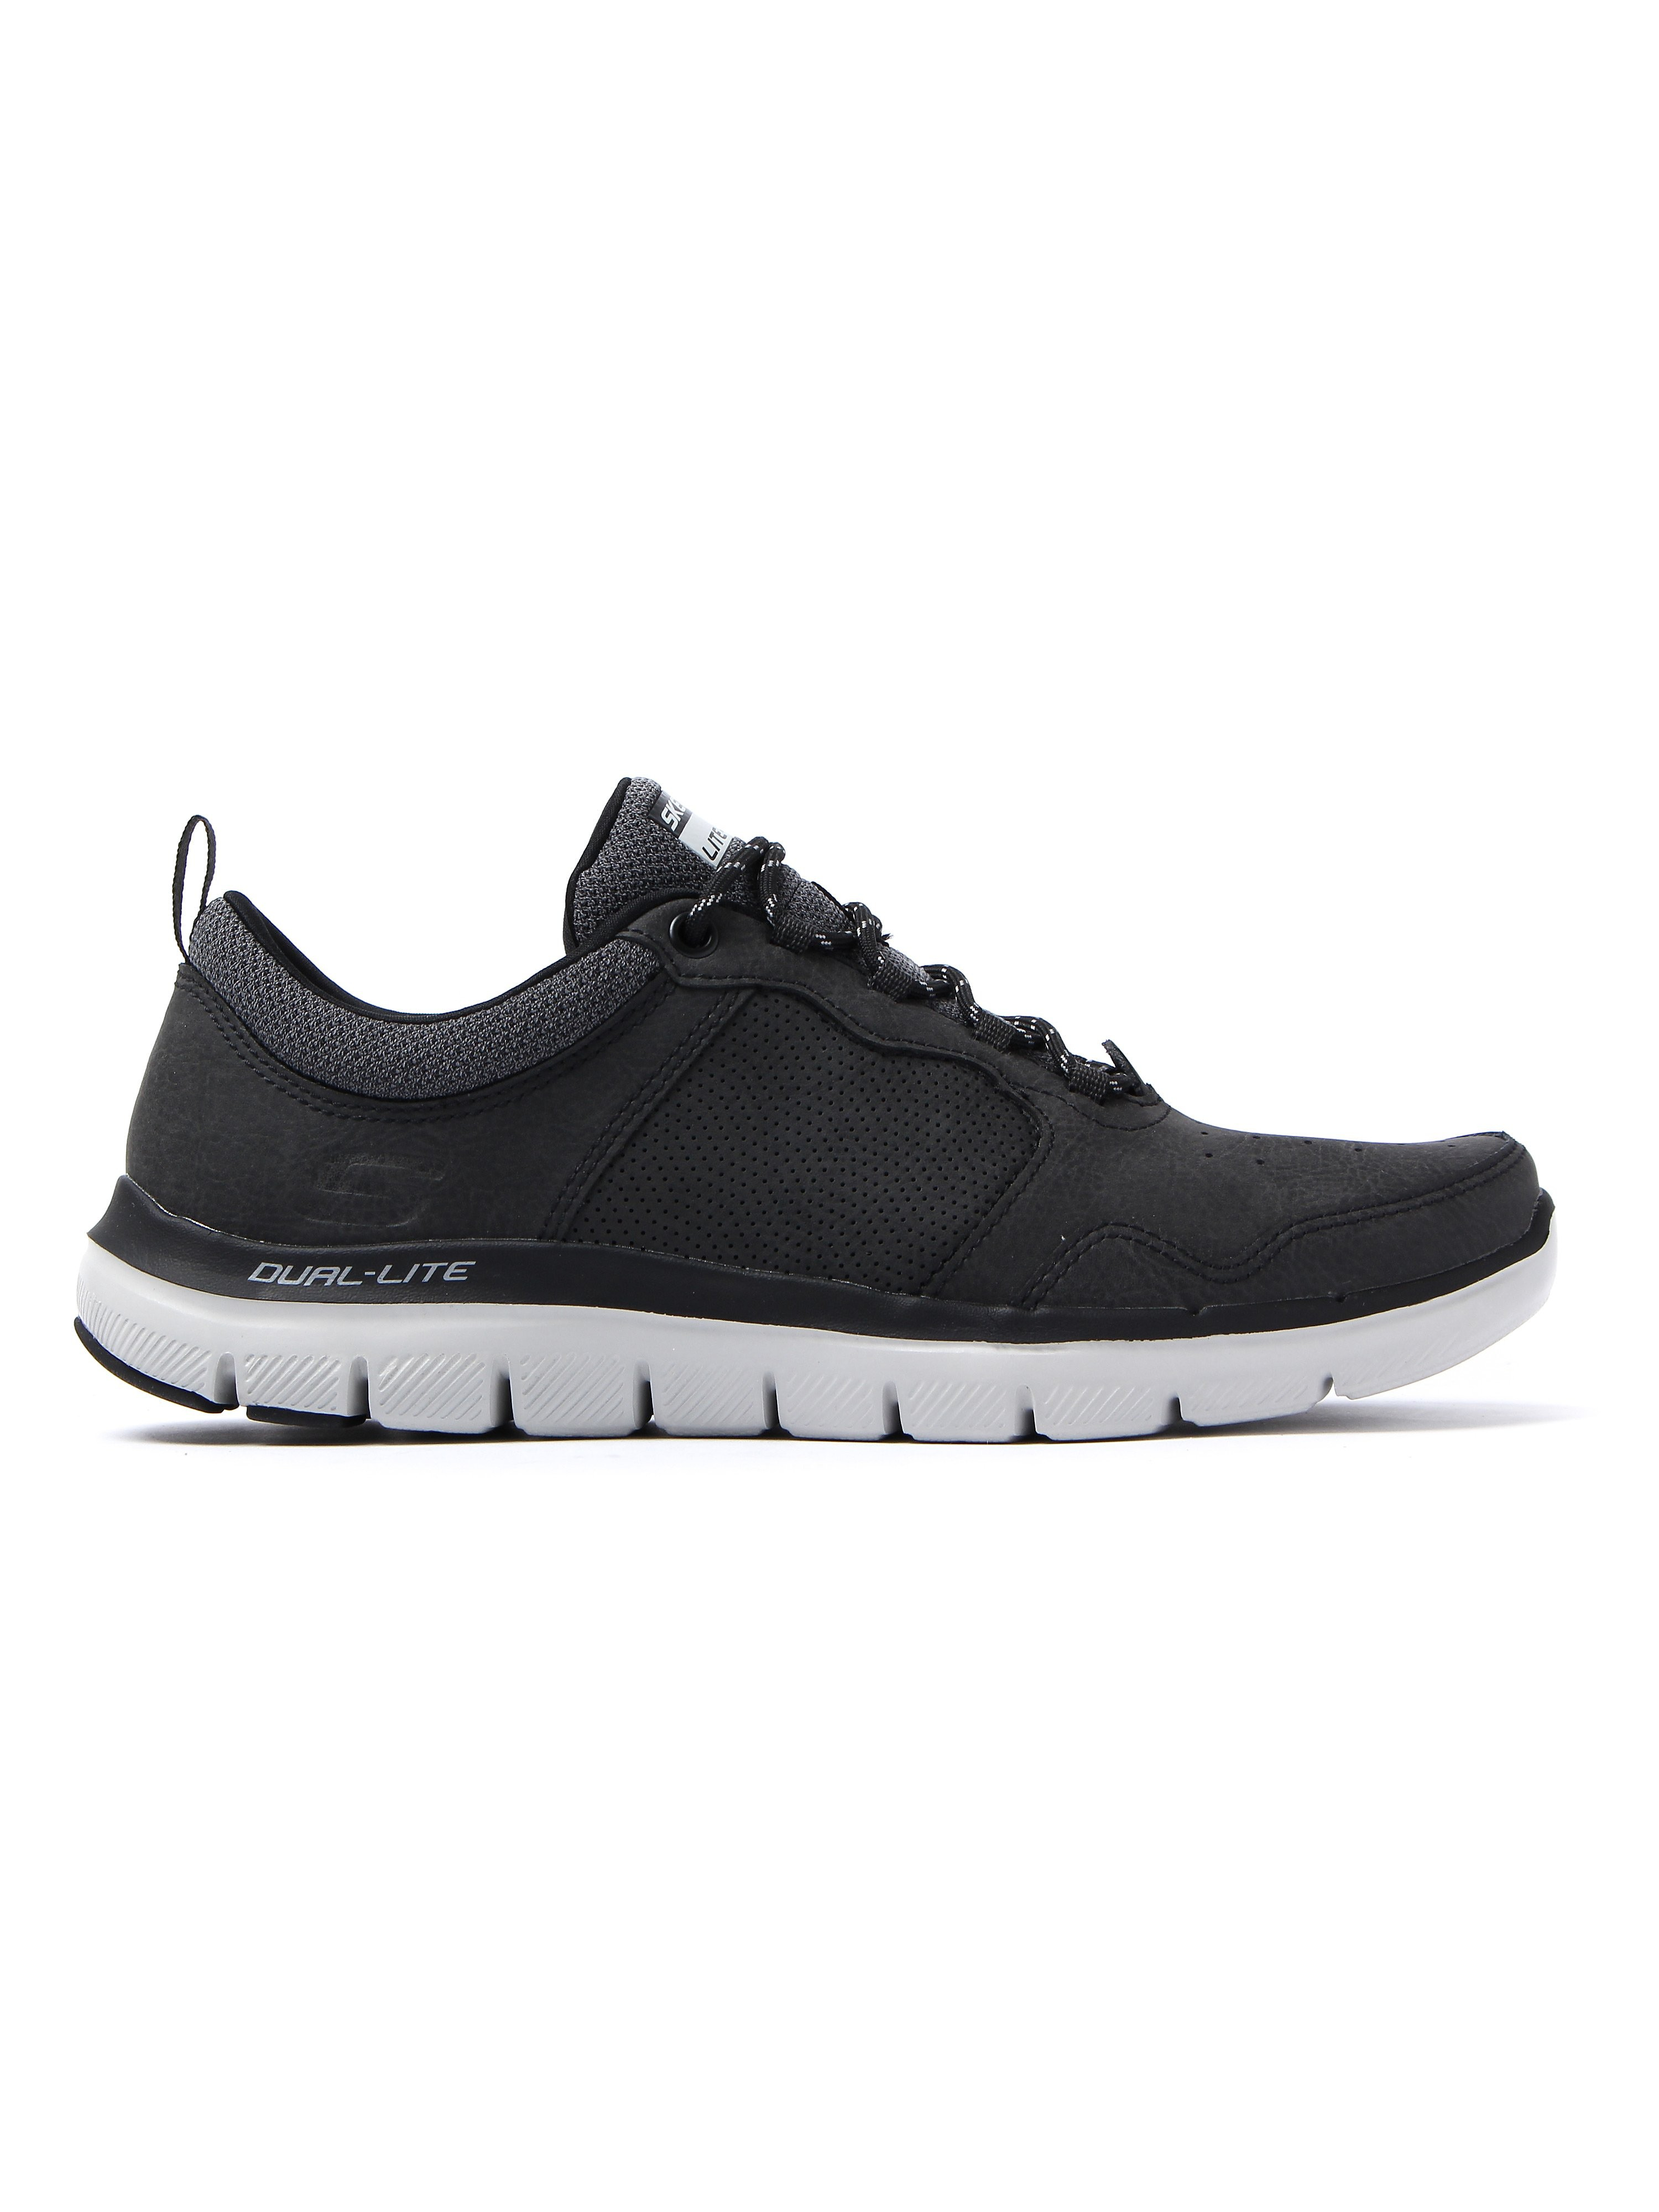 Skechers Men's Flex Advantage 2.0 Dali Trainers - Black Leather